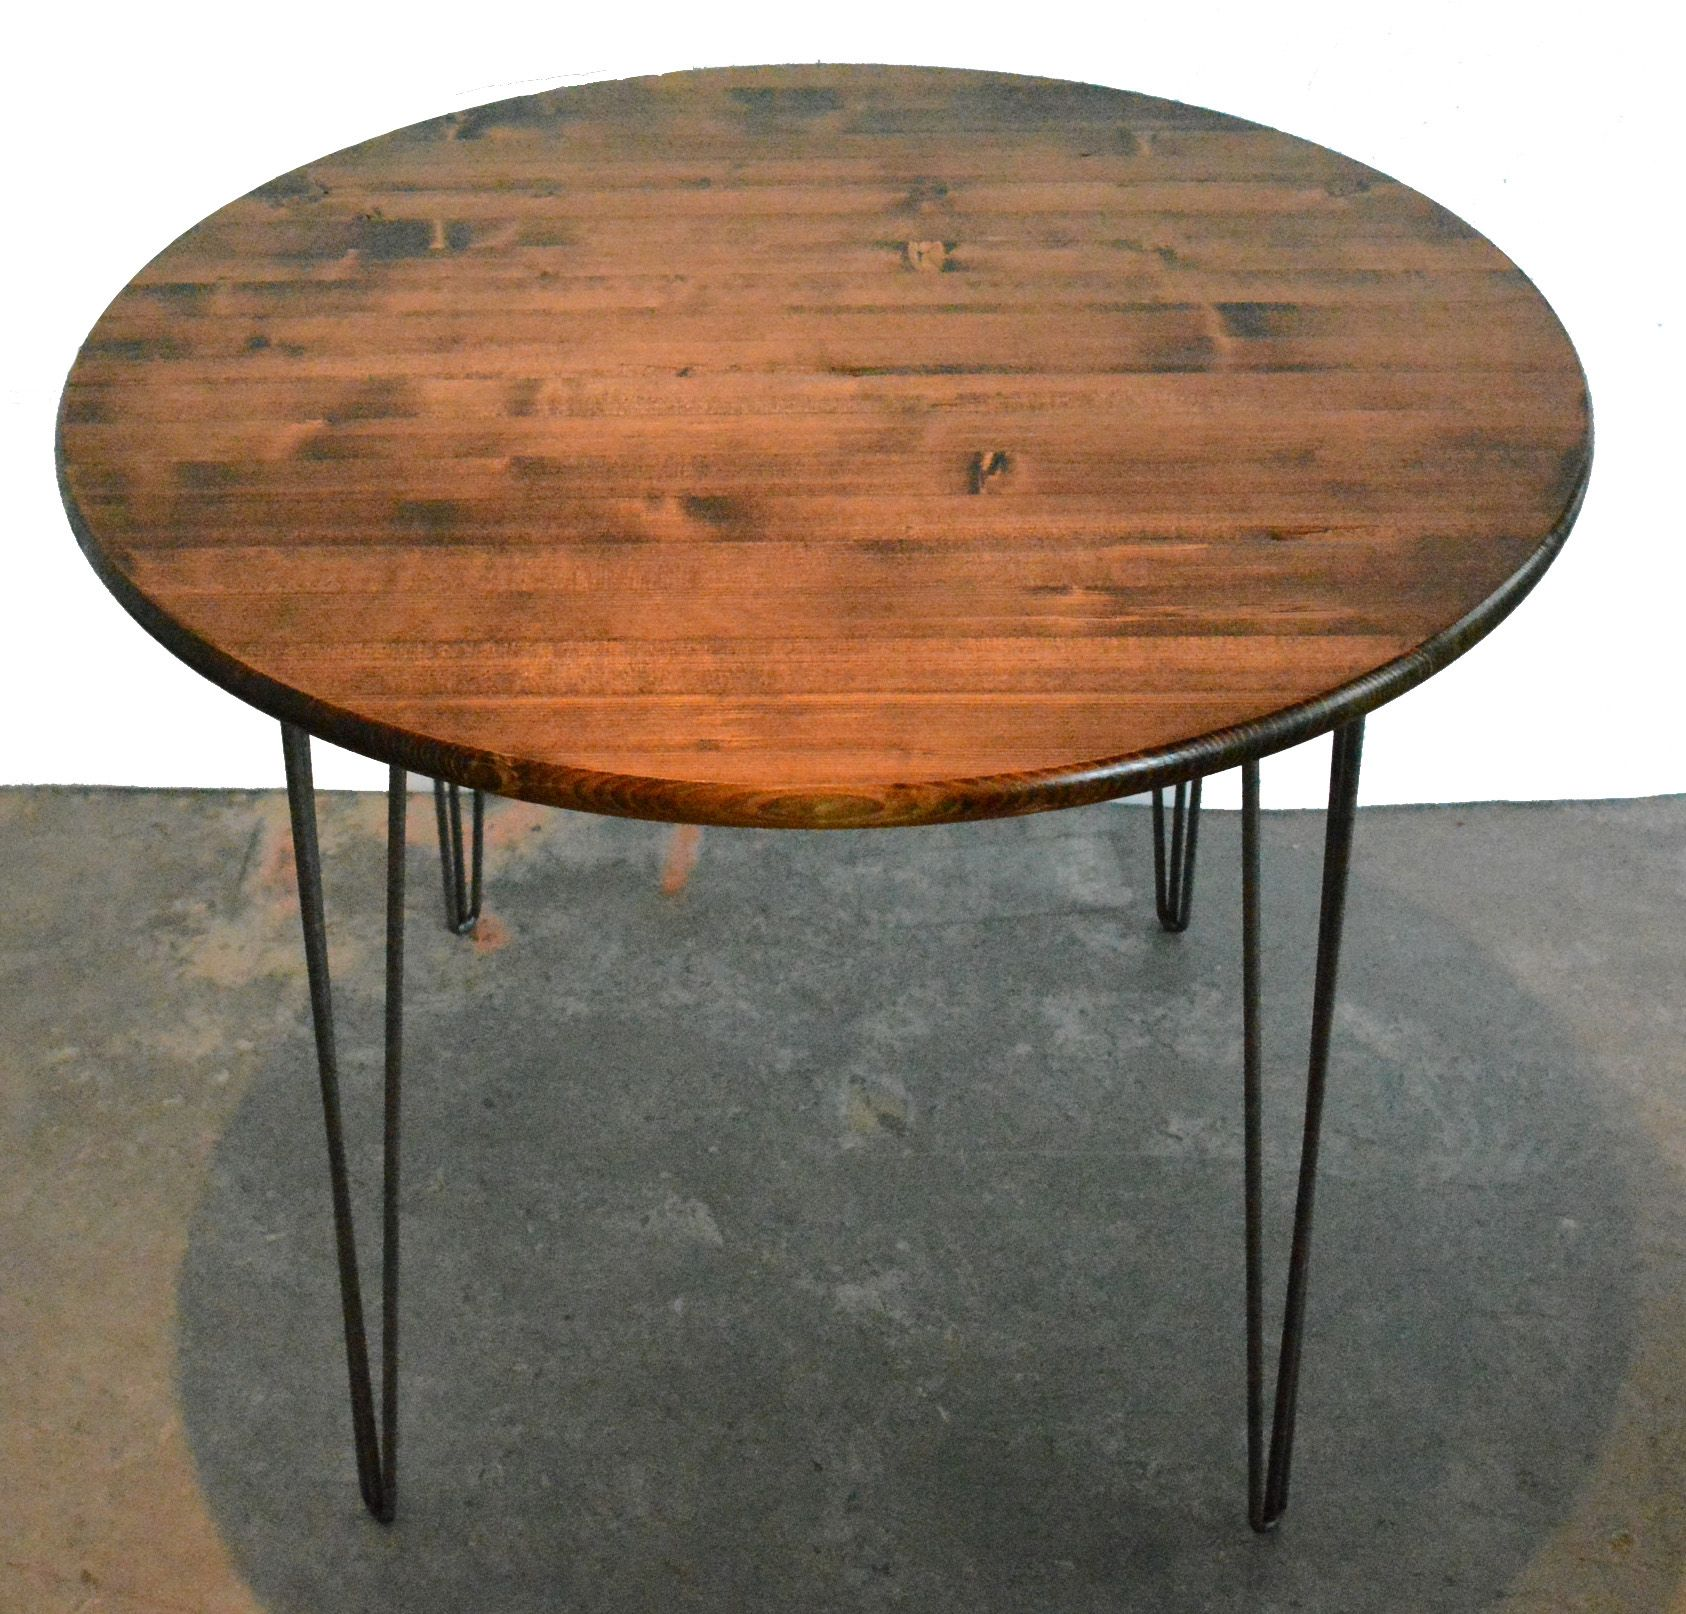 Custom Kitchen Tables: Custom Made Round Industrial Modern Kitchen Table By Grove